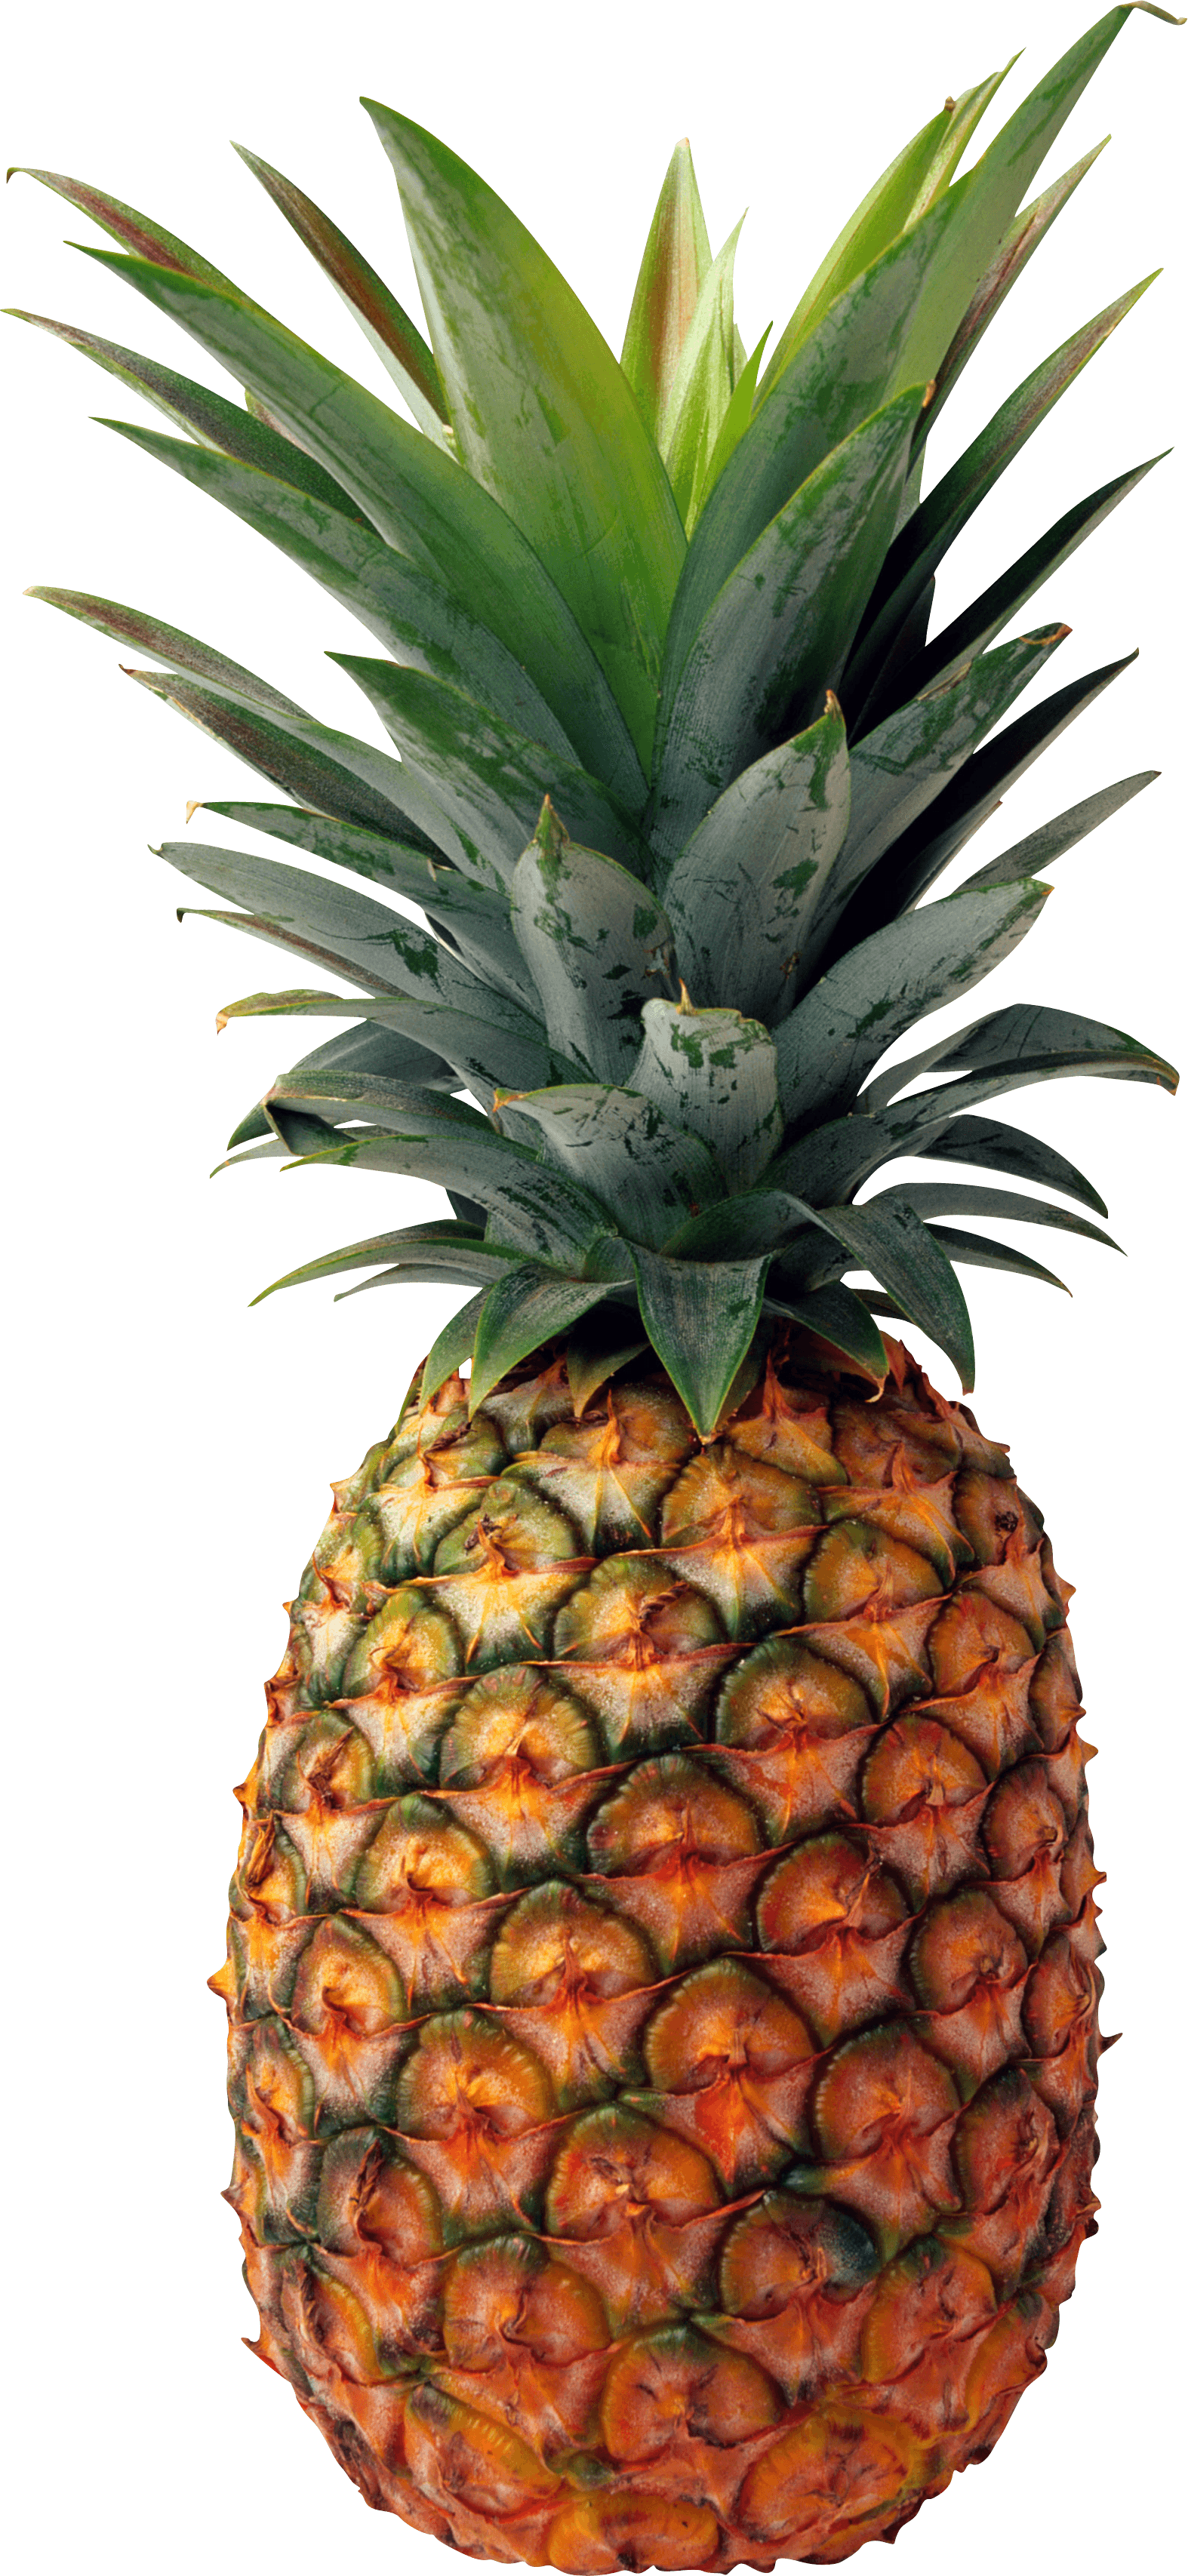 Pineapple clipart no background image library library Pineapple PNG Images Transparent Free Download | PNGMart.com image library library